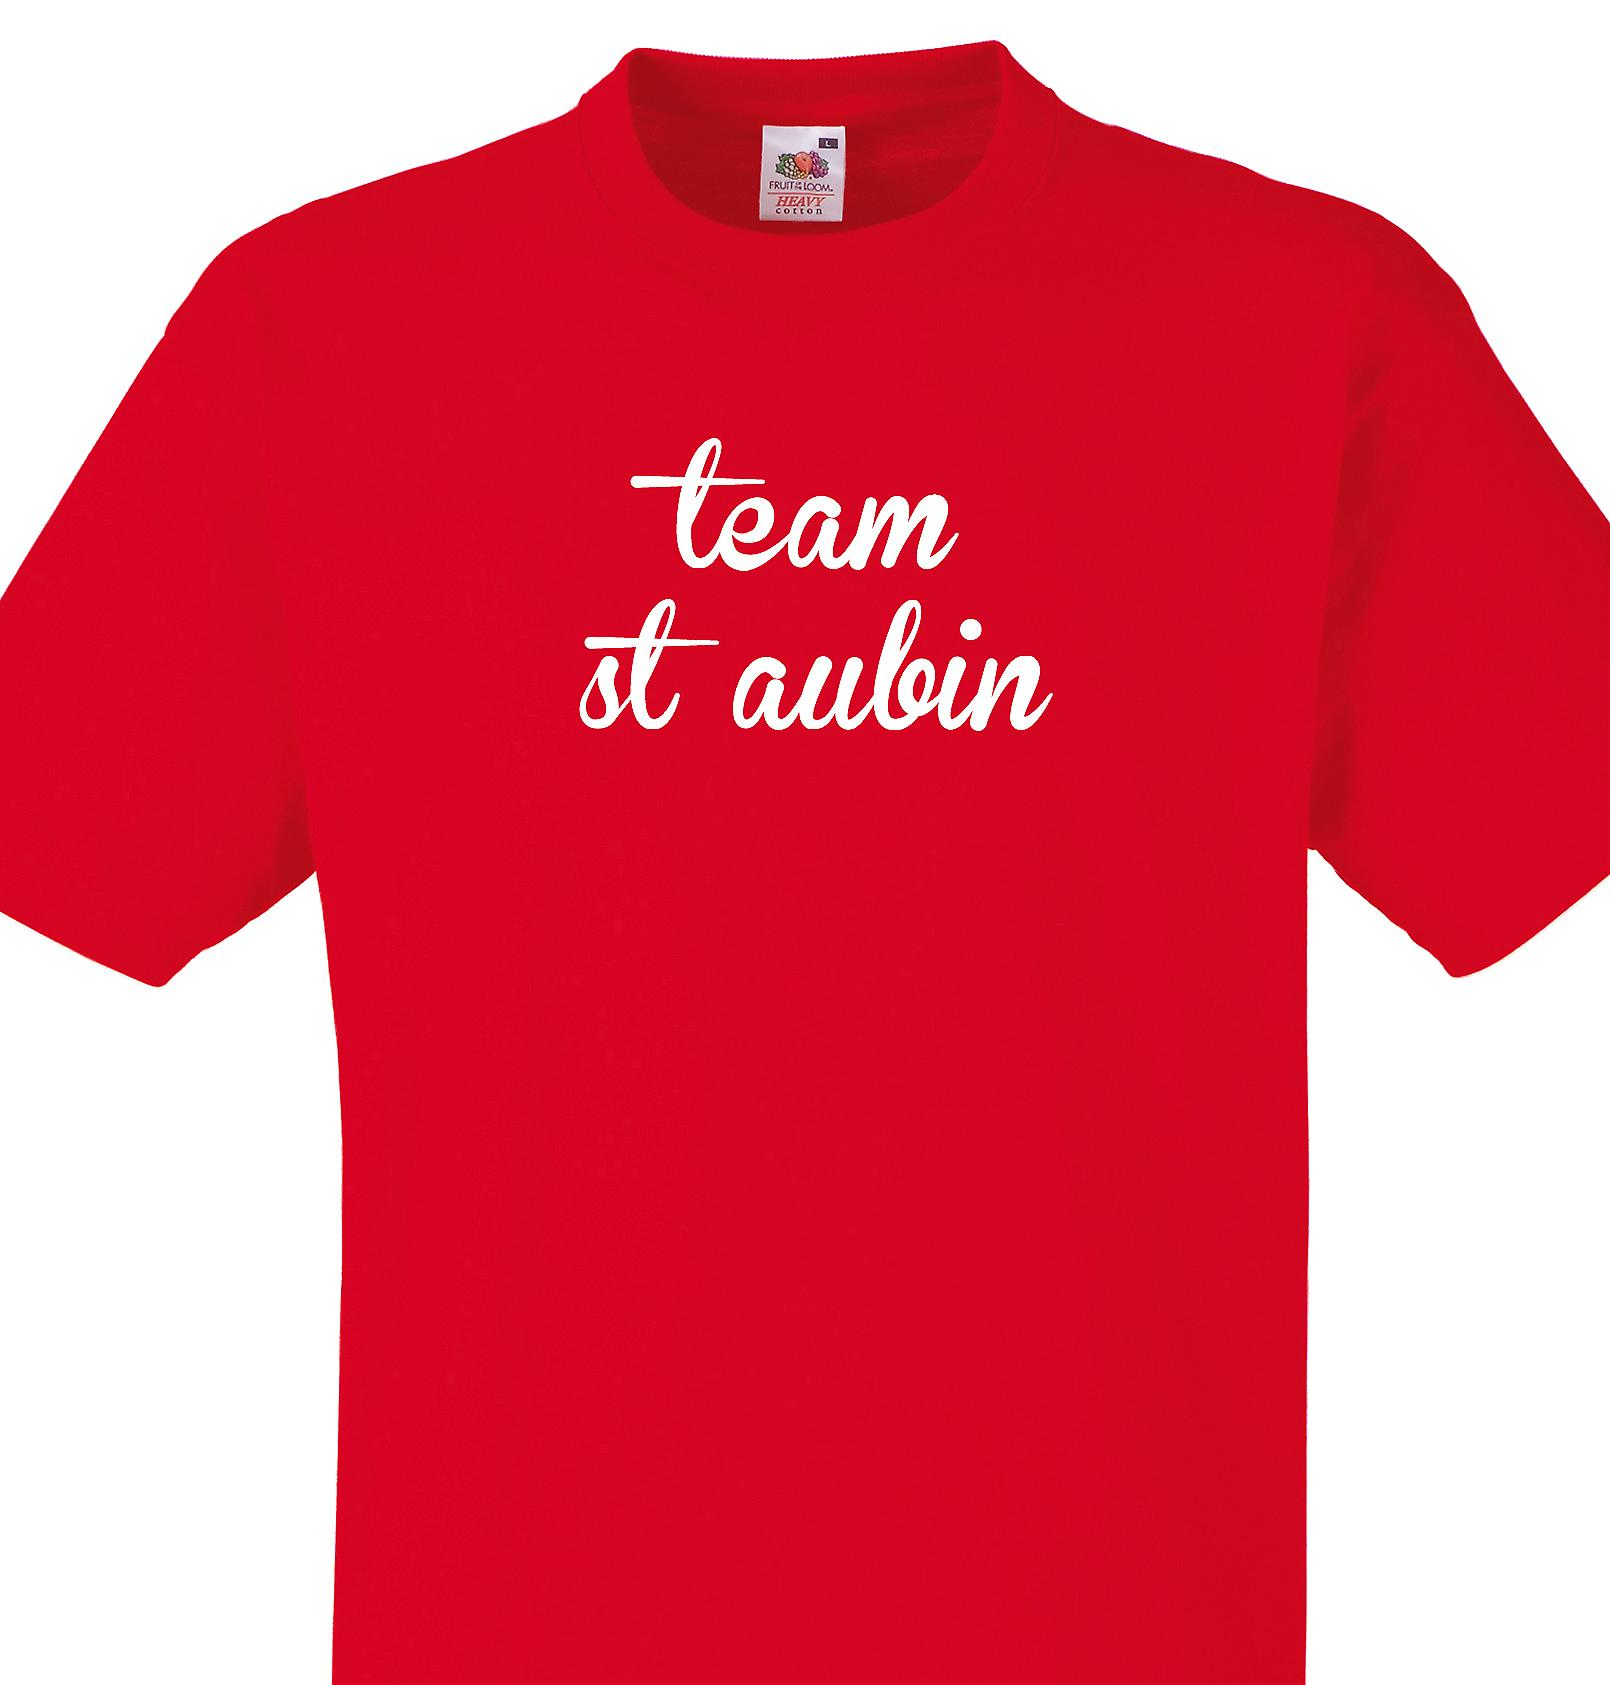 Team St aubin Red T shirt